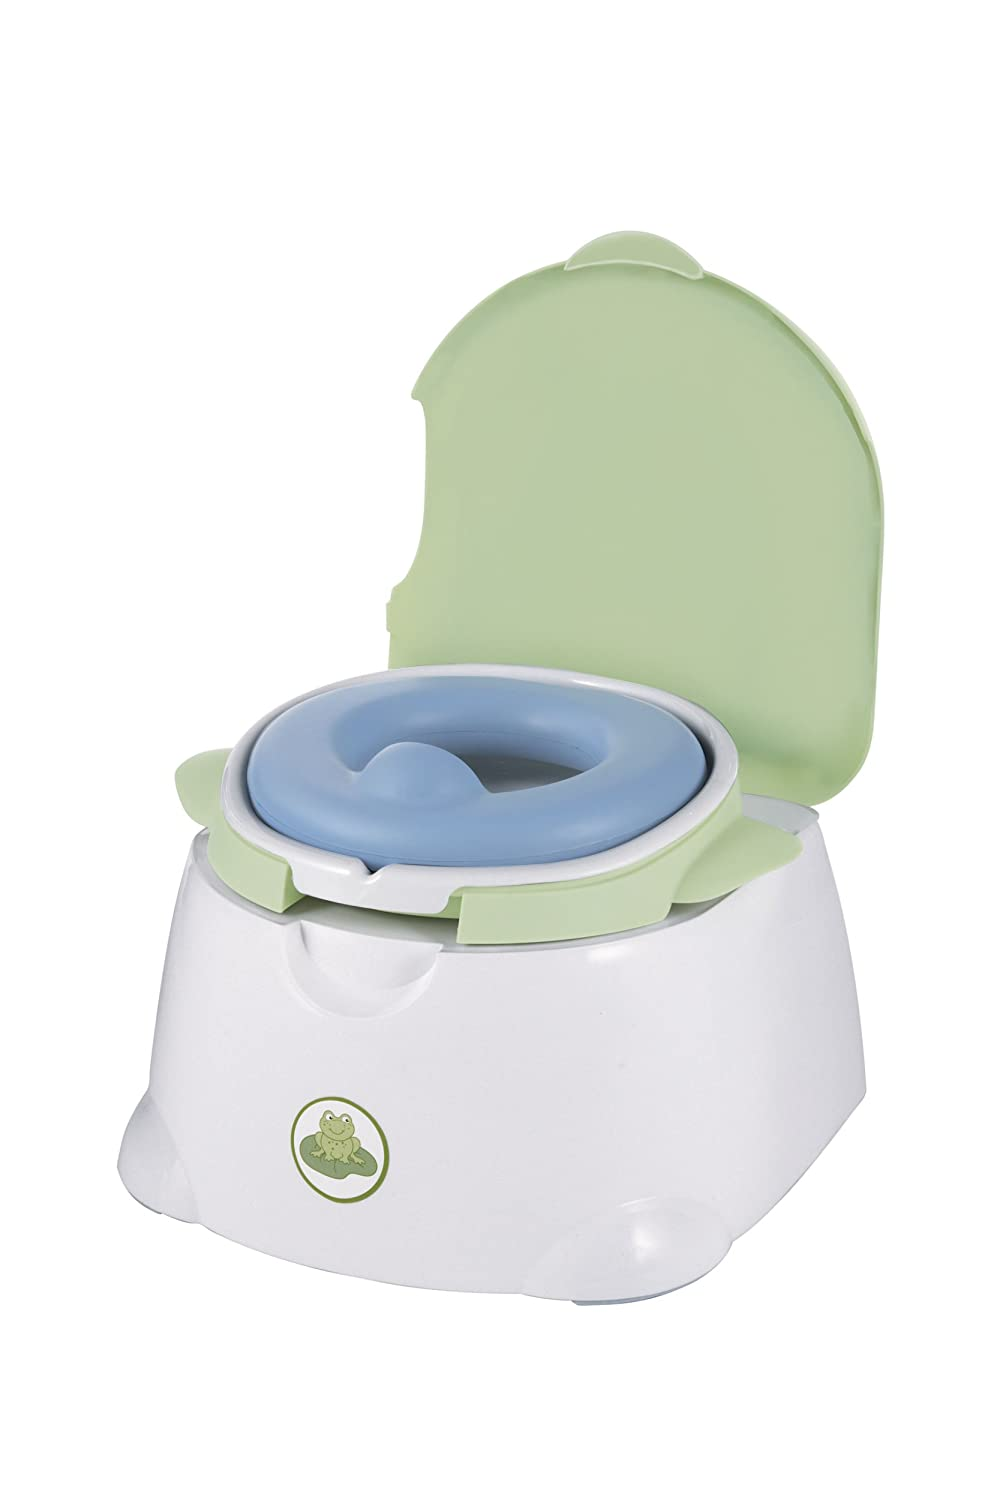 Amazon.com  Safety 1St Comfy Cushy 3-in-1 Potty  Toilet Training Potties  Baby  sc 1 st  Amazon.com & Amazon.com : Safety 1St Comfy Cushy 3-in-1 Potty : Toilet Training ... islam-shia.org